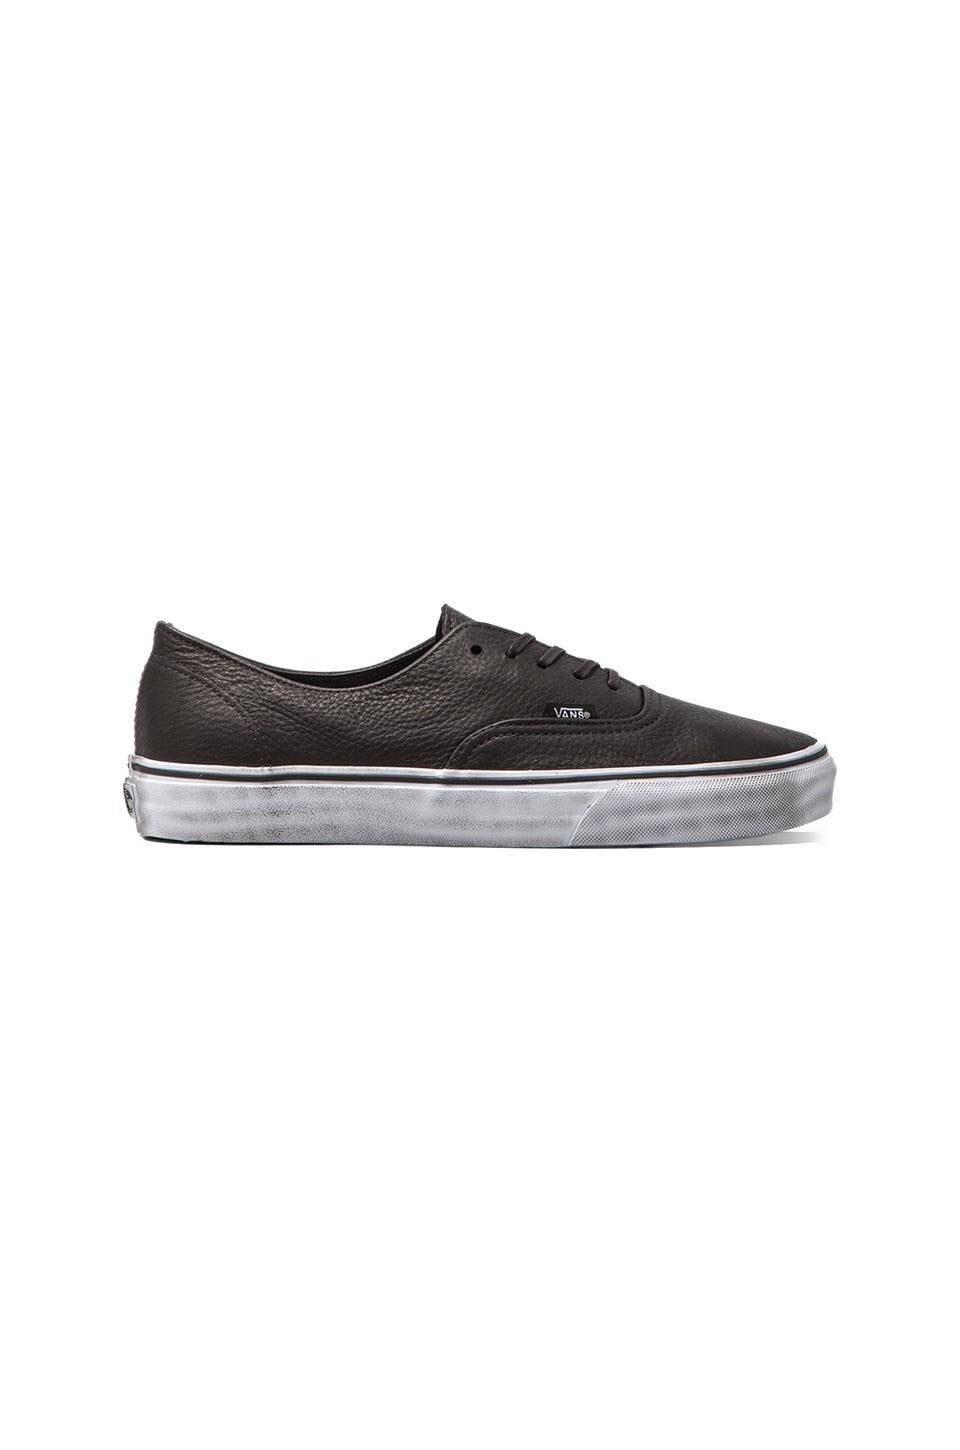 Vans California Authentic Decon Distressed in Black